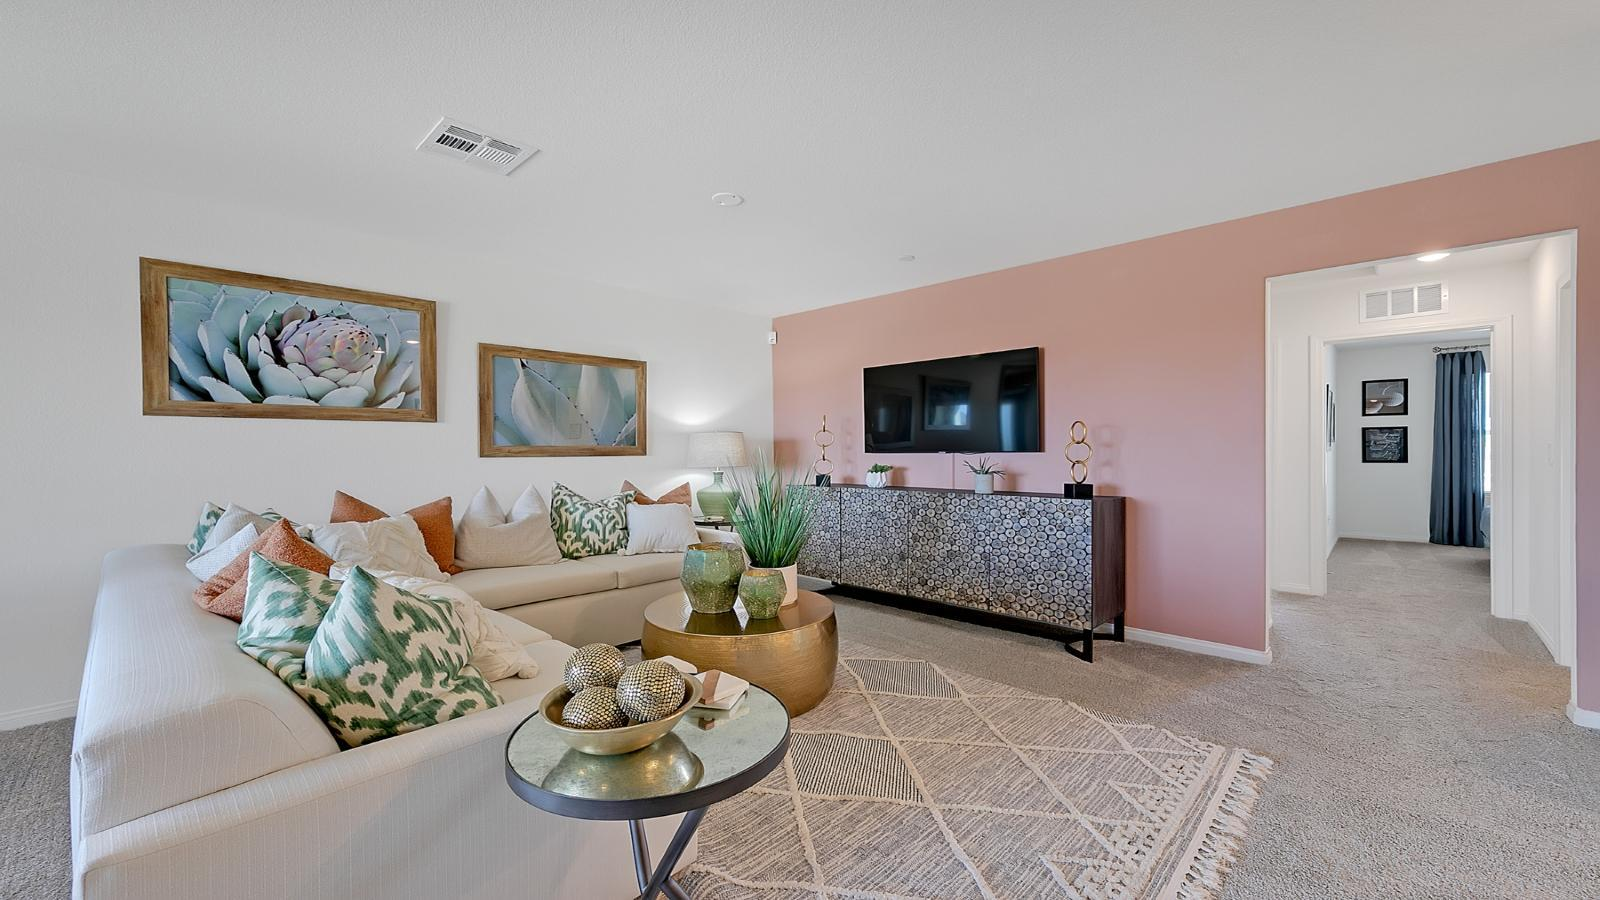 Living Area featured in the Crimson Plan 525 By Touchstone Living in Las Vegas, NV